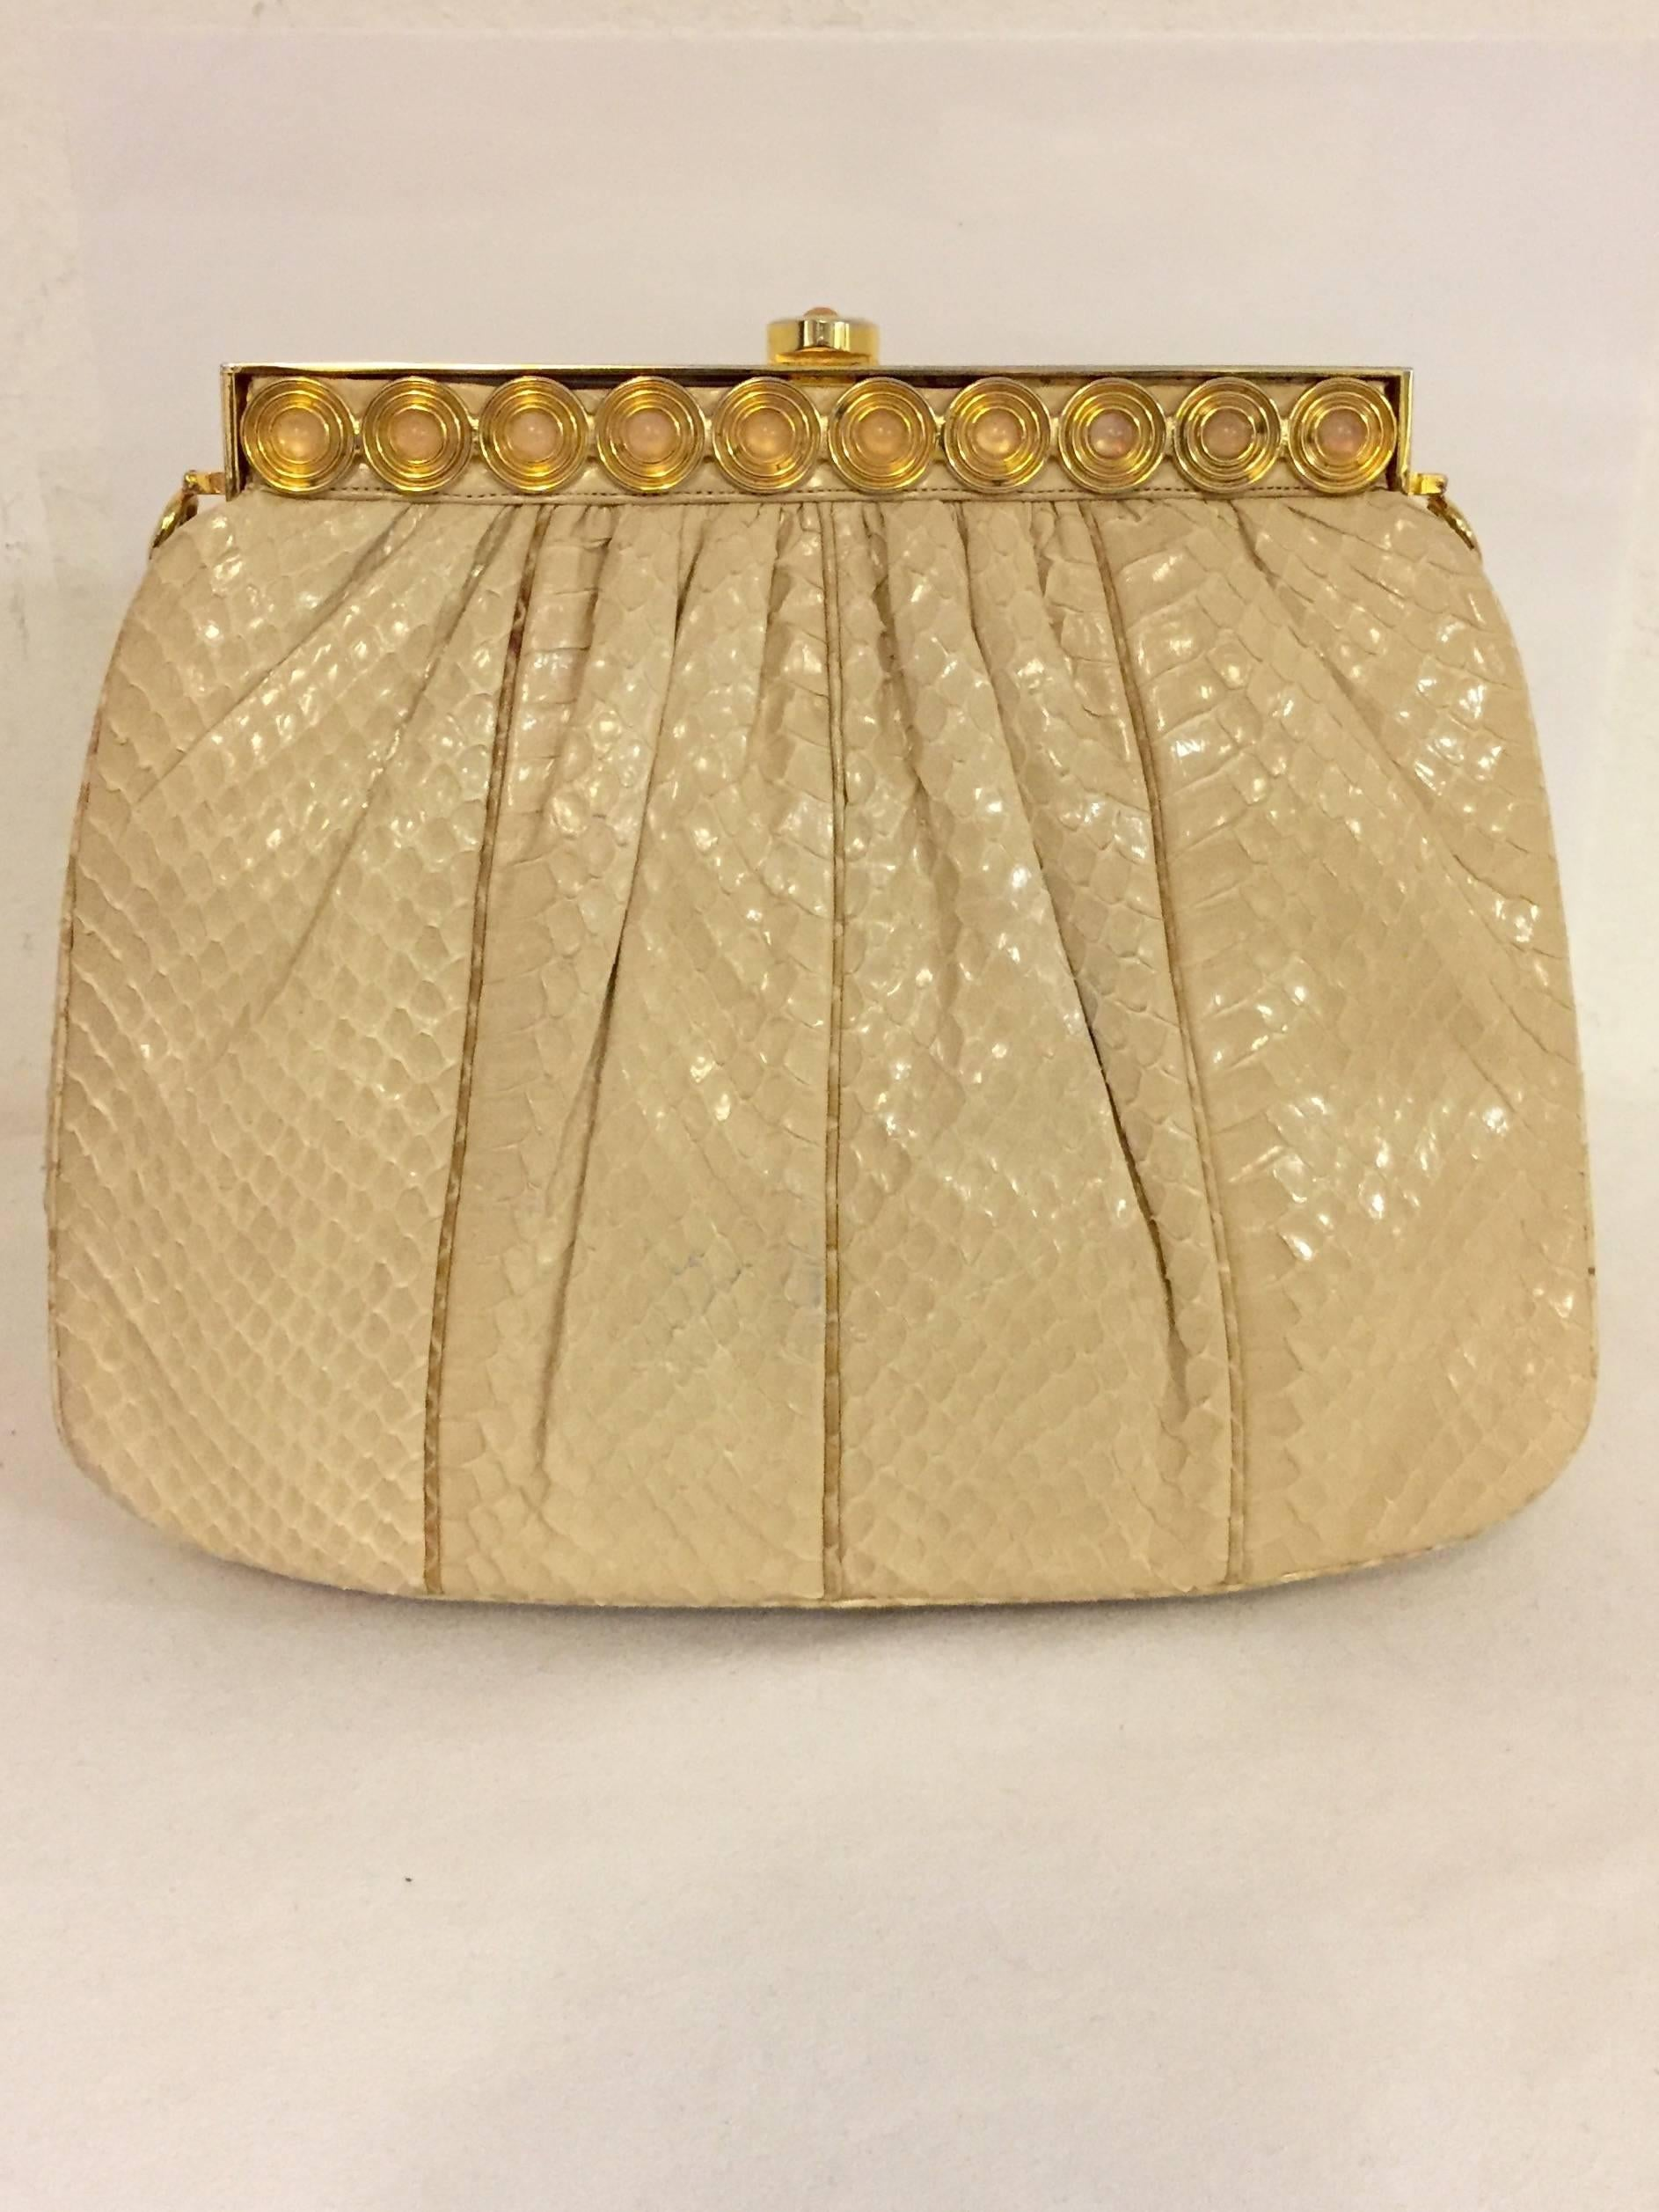 66cd0a895a Stylish Judith Leiber Snakeskin Cream Colored Cross body For Sale at 1stdibs